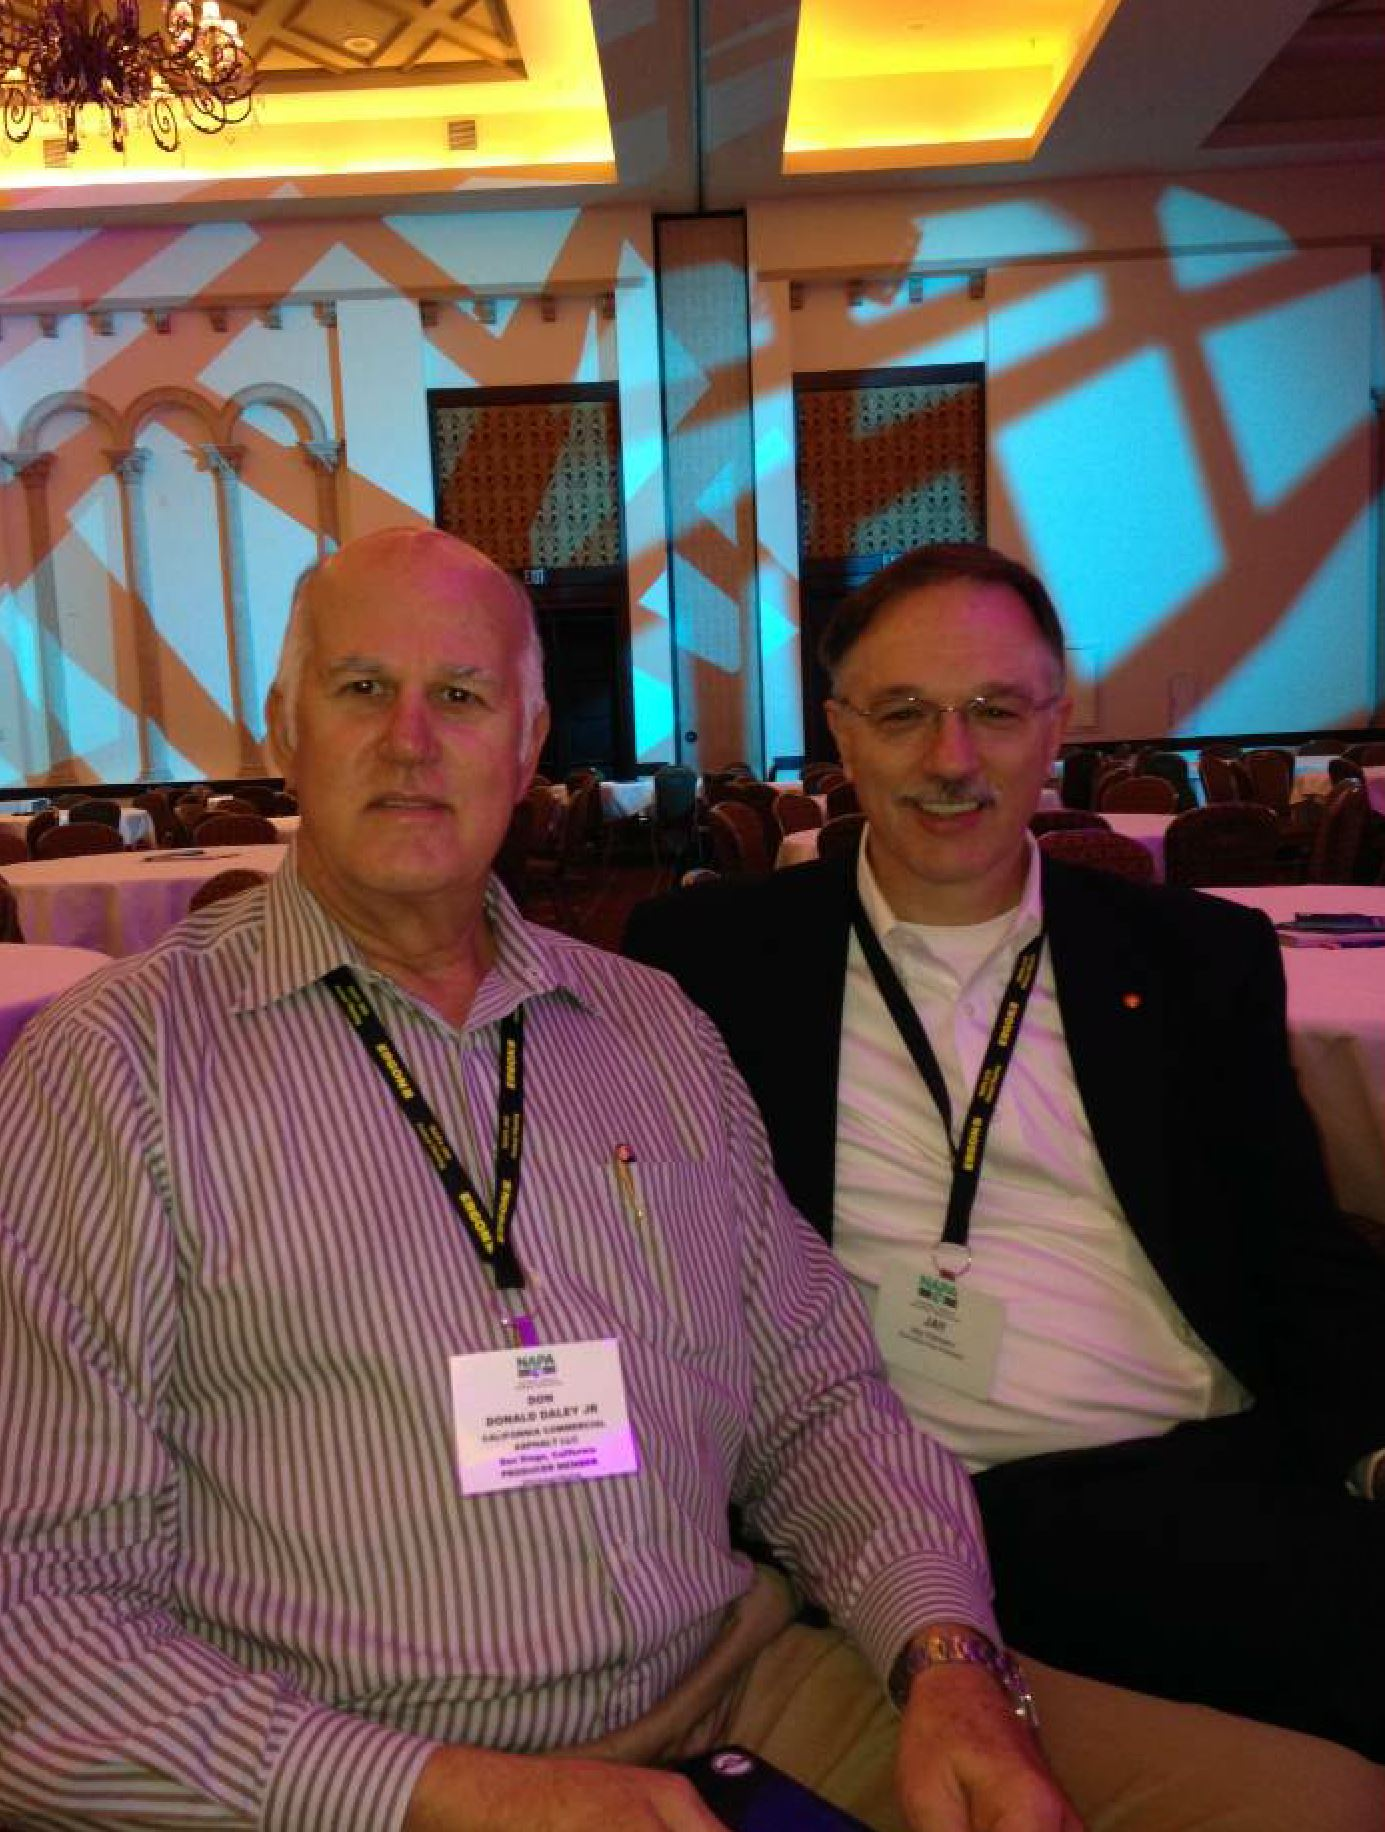 Don Daley Jr., (left) was recognized with NAPA's Asphalt Ambassador Commendation in 2014. Here, he sits next to NAPA Executive Vice President Jay Hansen at NAPA's Annual Meeting. Photo by the California Asphalt Pavement Association (CalAPA) – used with permission.